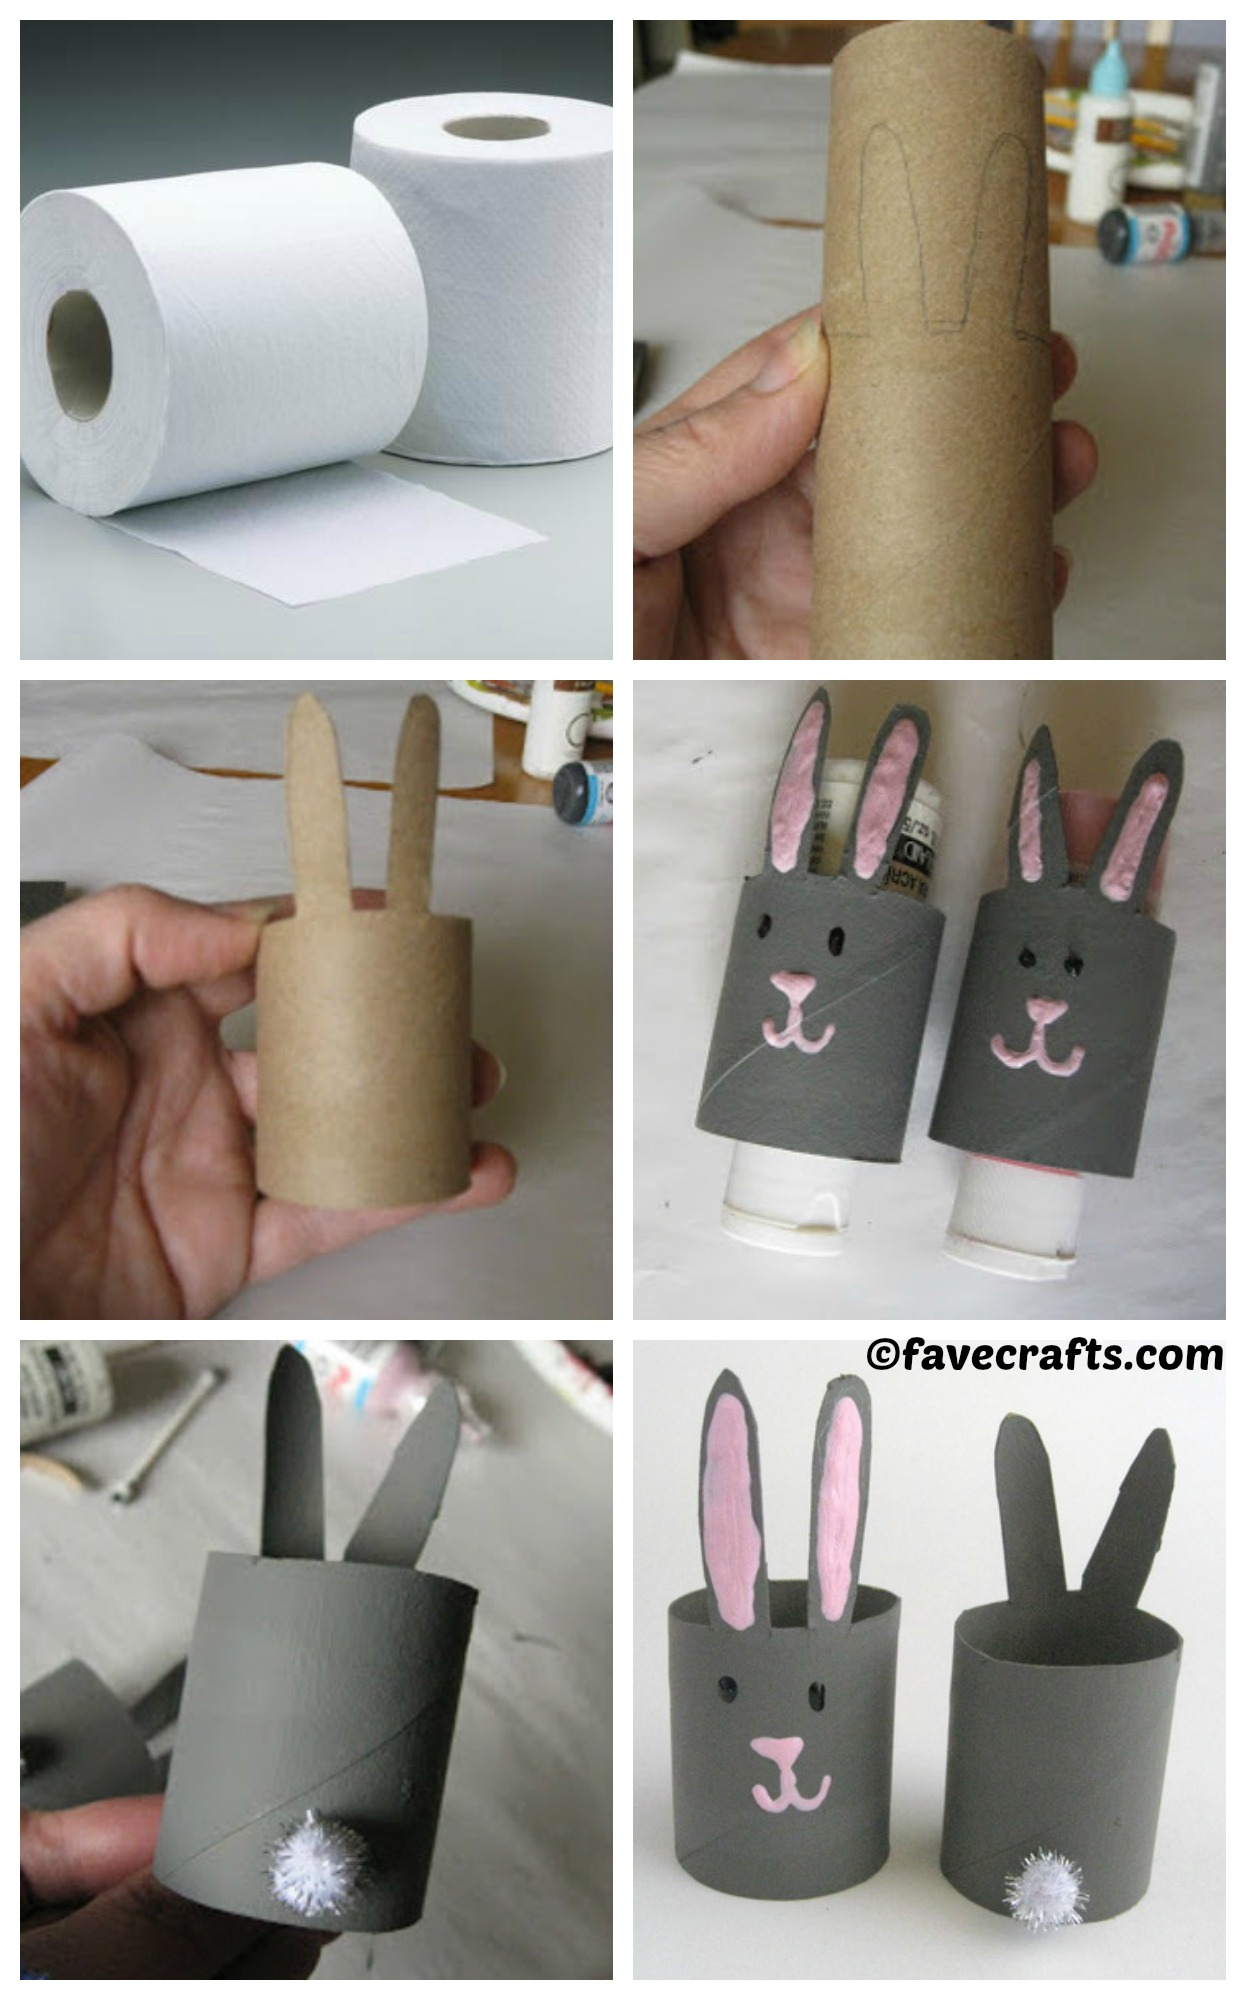 How to make Toilet Paper Roll Napkin Rolls